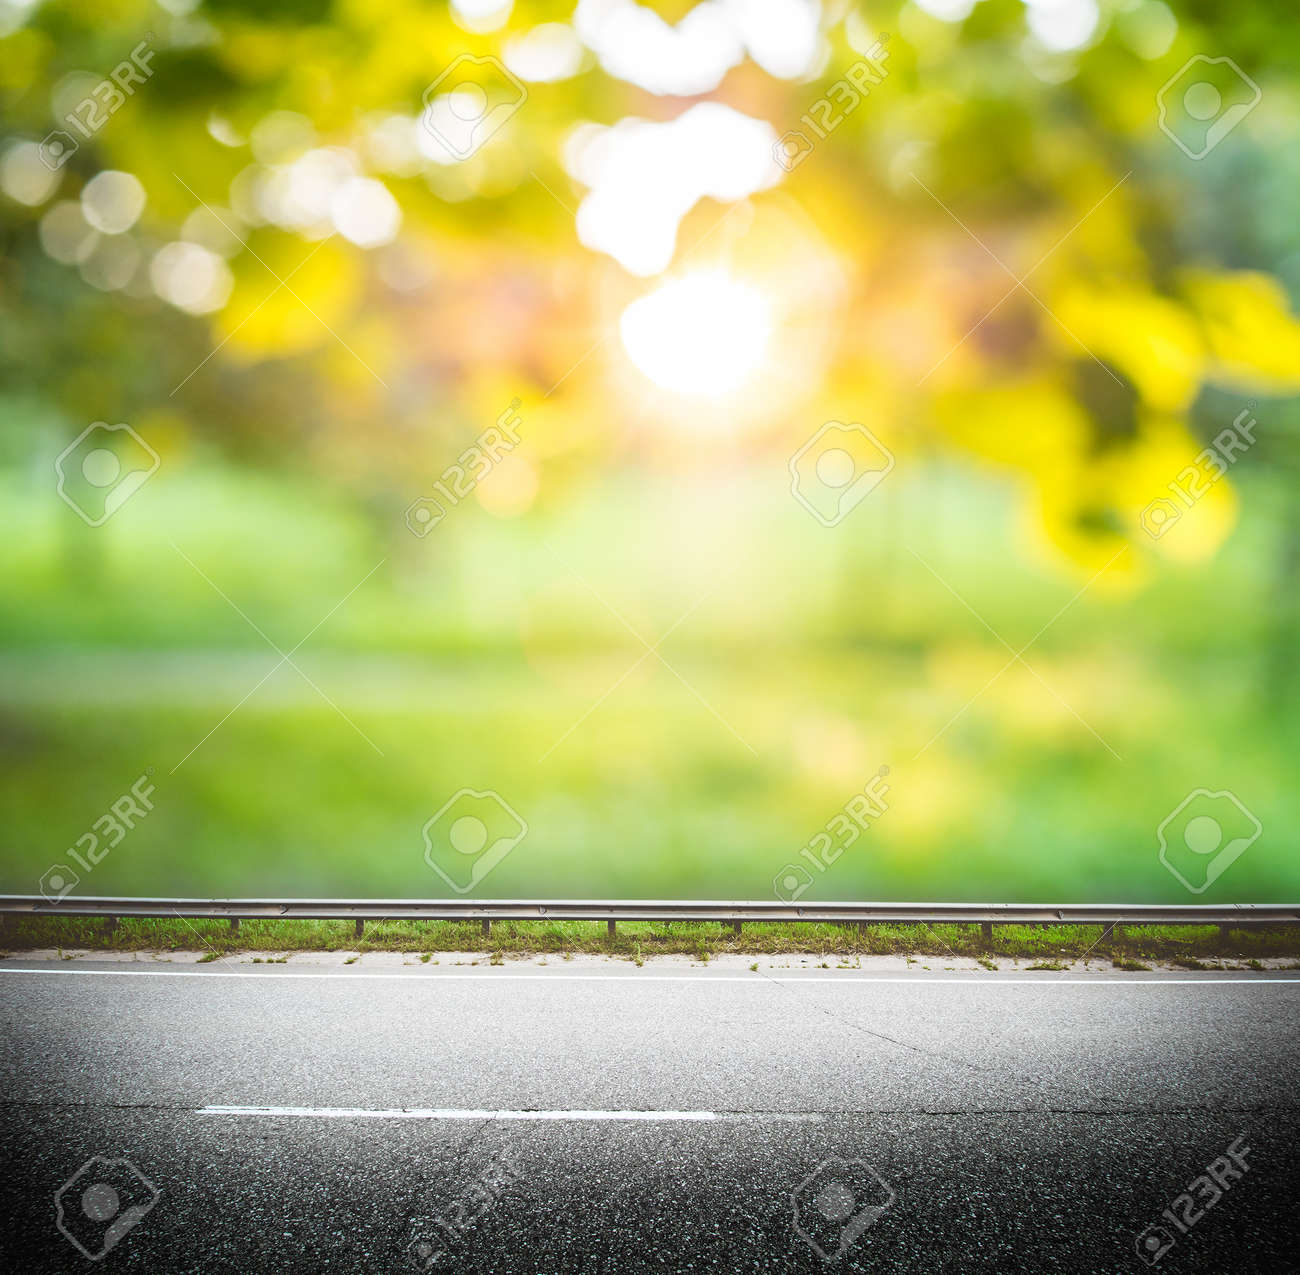 Green Forest Road Background Asphalt And Blurred Park Stock Photo Picture And Royalty Free Image Image 88326518